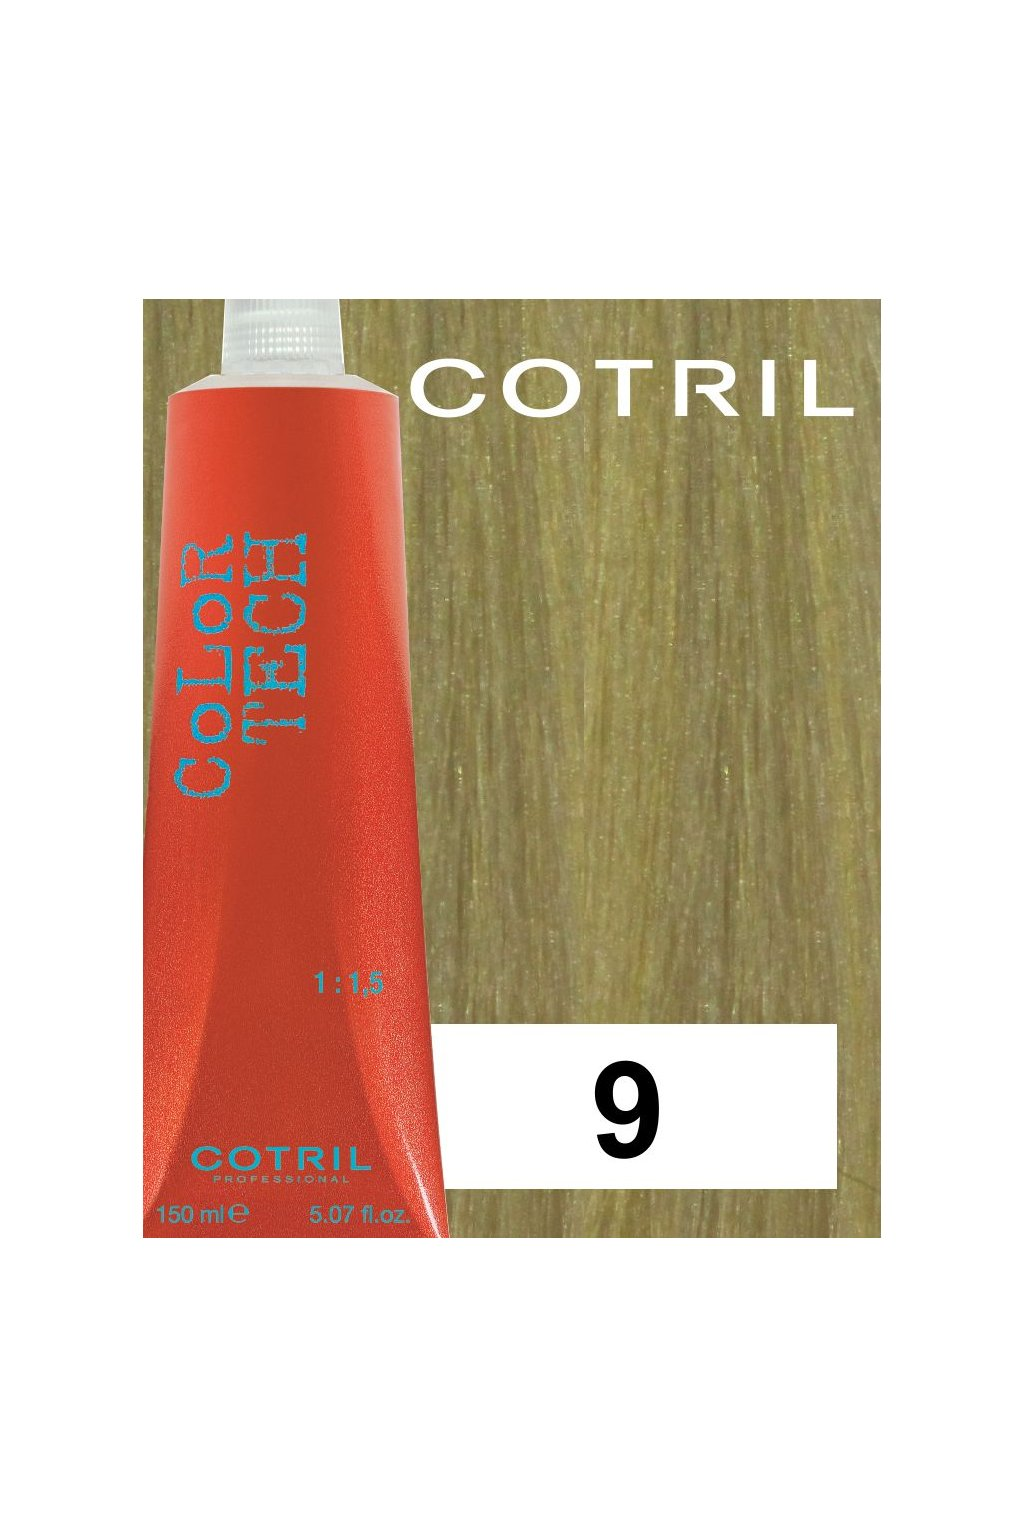 9 ct cotril